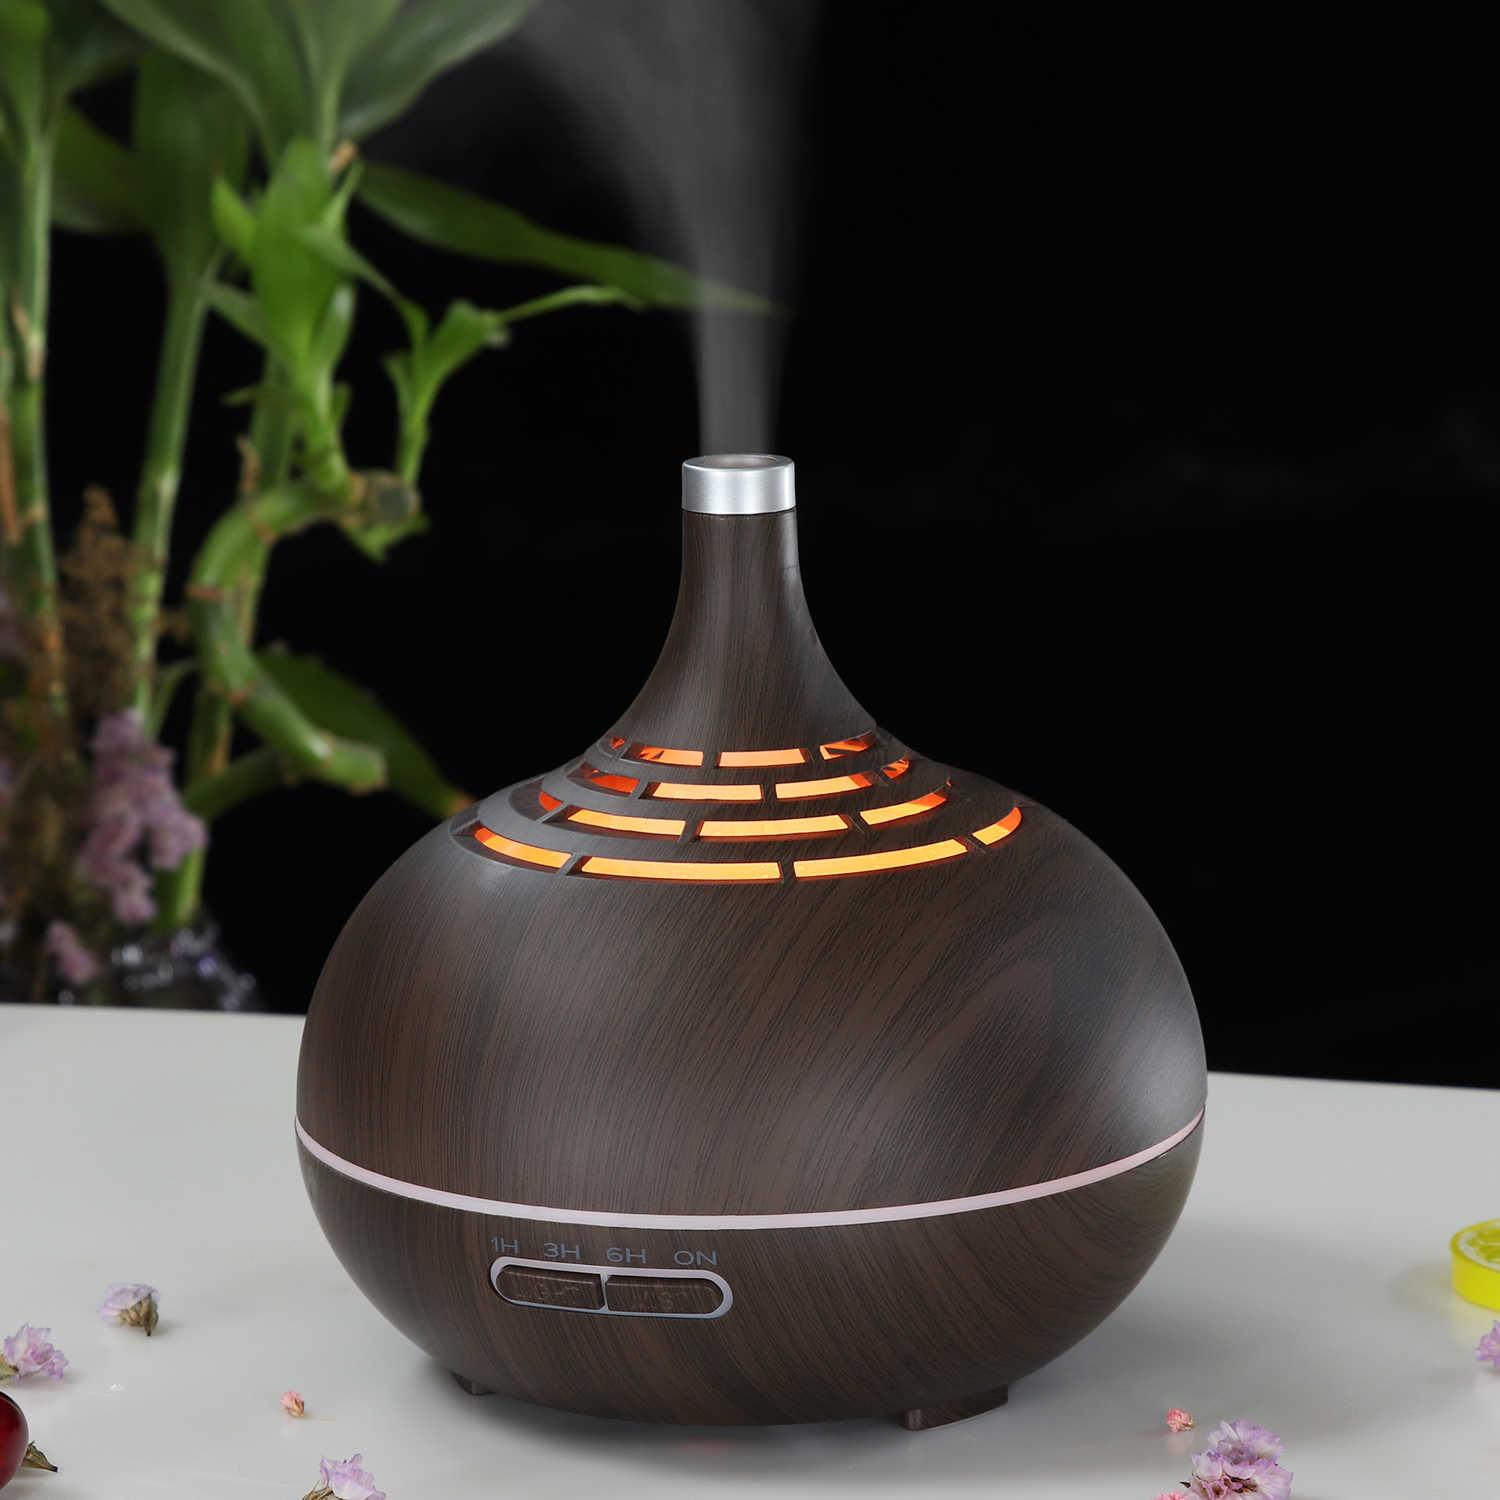 400ml ไฟฟ้า Ultrasonic Air Humidifier AROMA Essential Oil Diffuser fogger LED Light Aroma Diffuser Mist เครื่องทำ